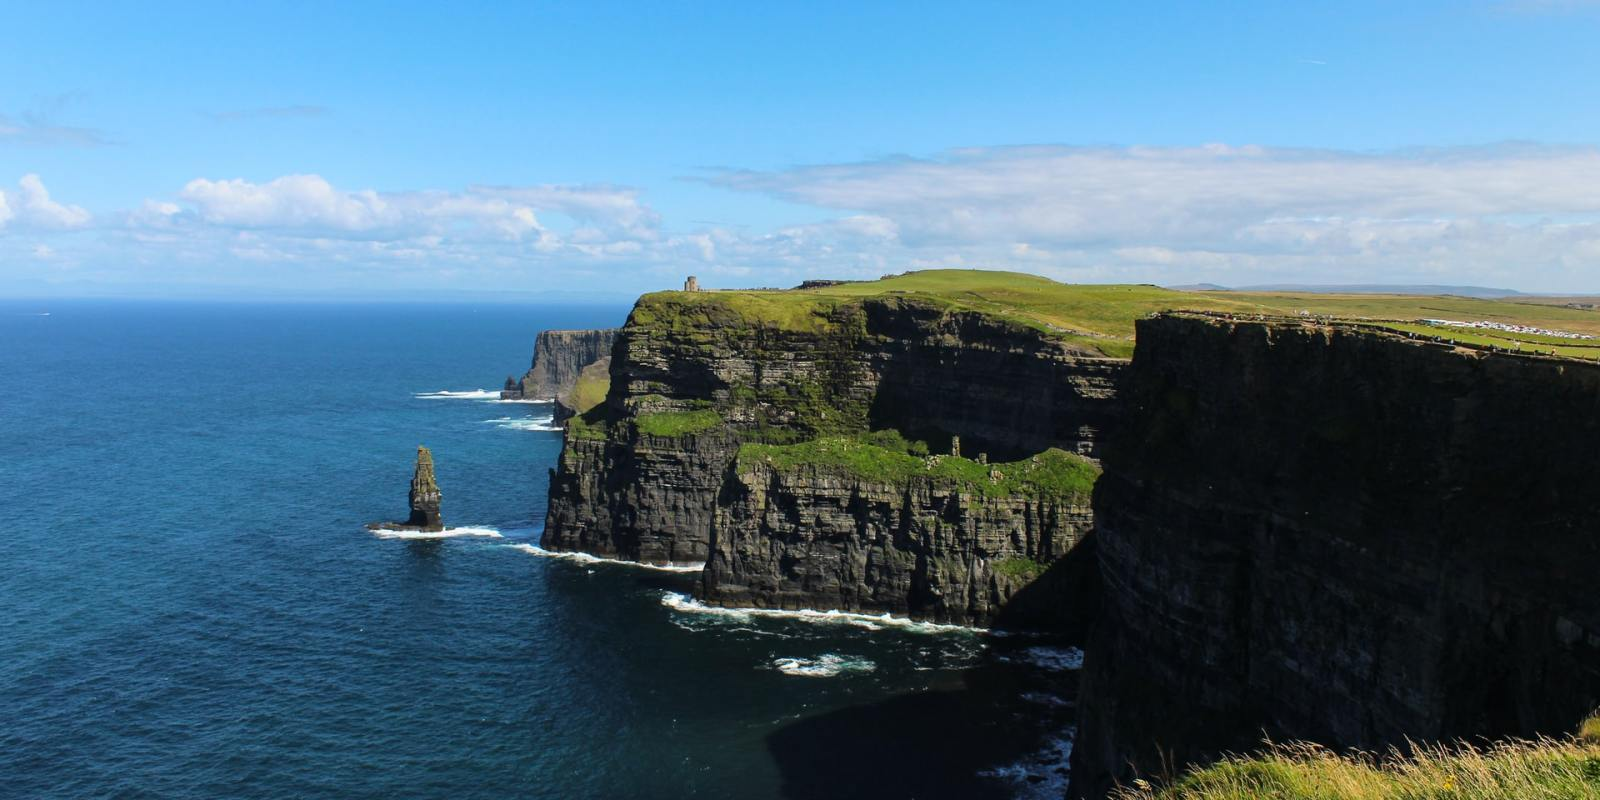 The Best Areas to Stay near the Cliffs of Moher, Ireland